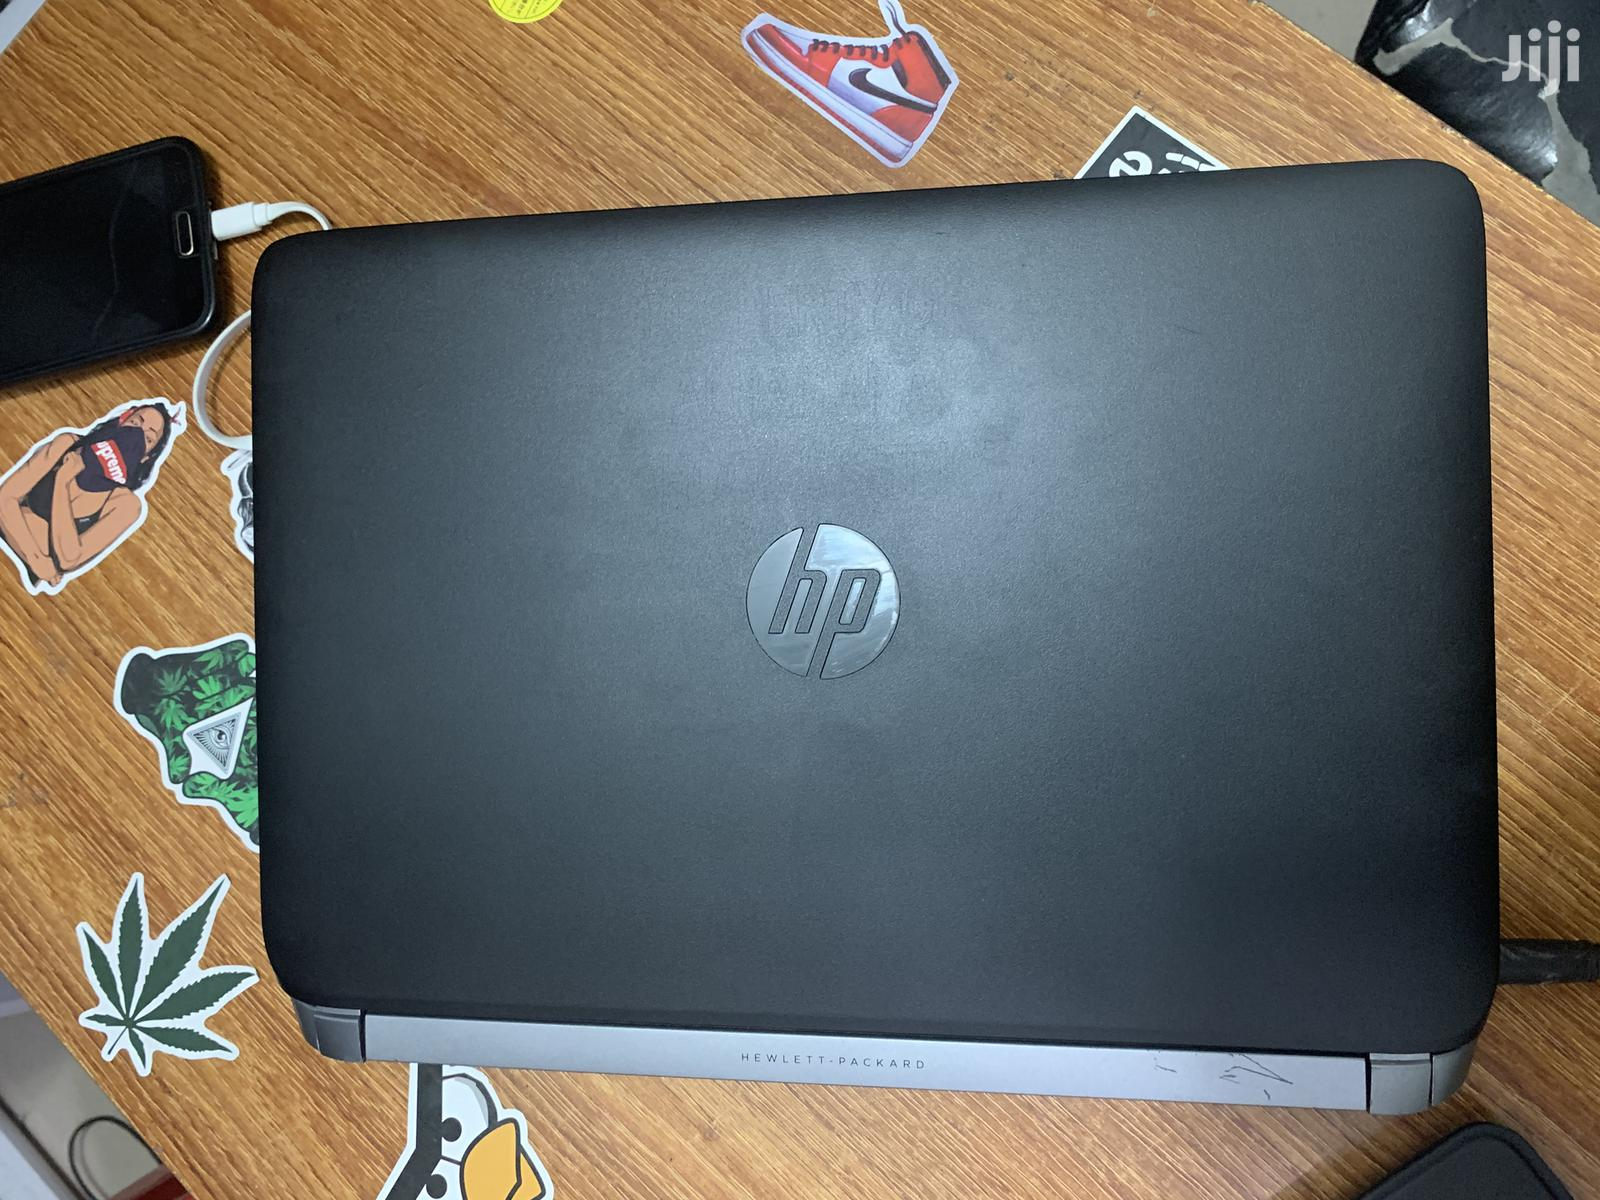 Laptop HP ProBook 440 G2 4GB Intel Core I5 HDD 500GB | Laptops & Computers for sale in Kokomlemle, Greater Accra, Ghana